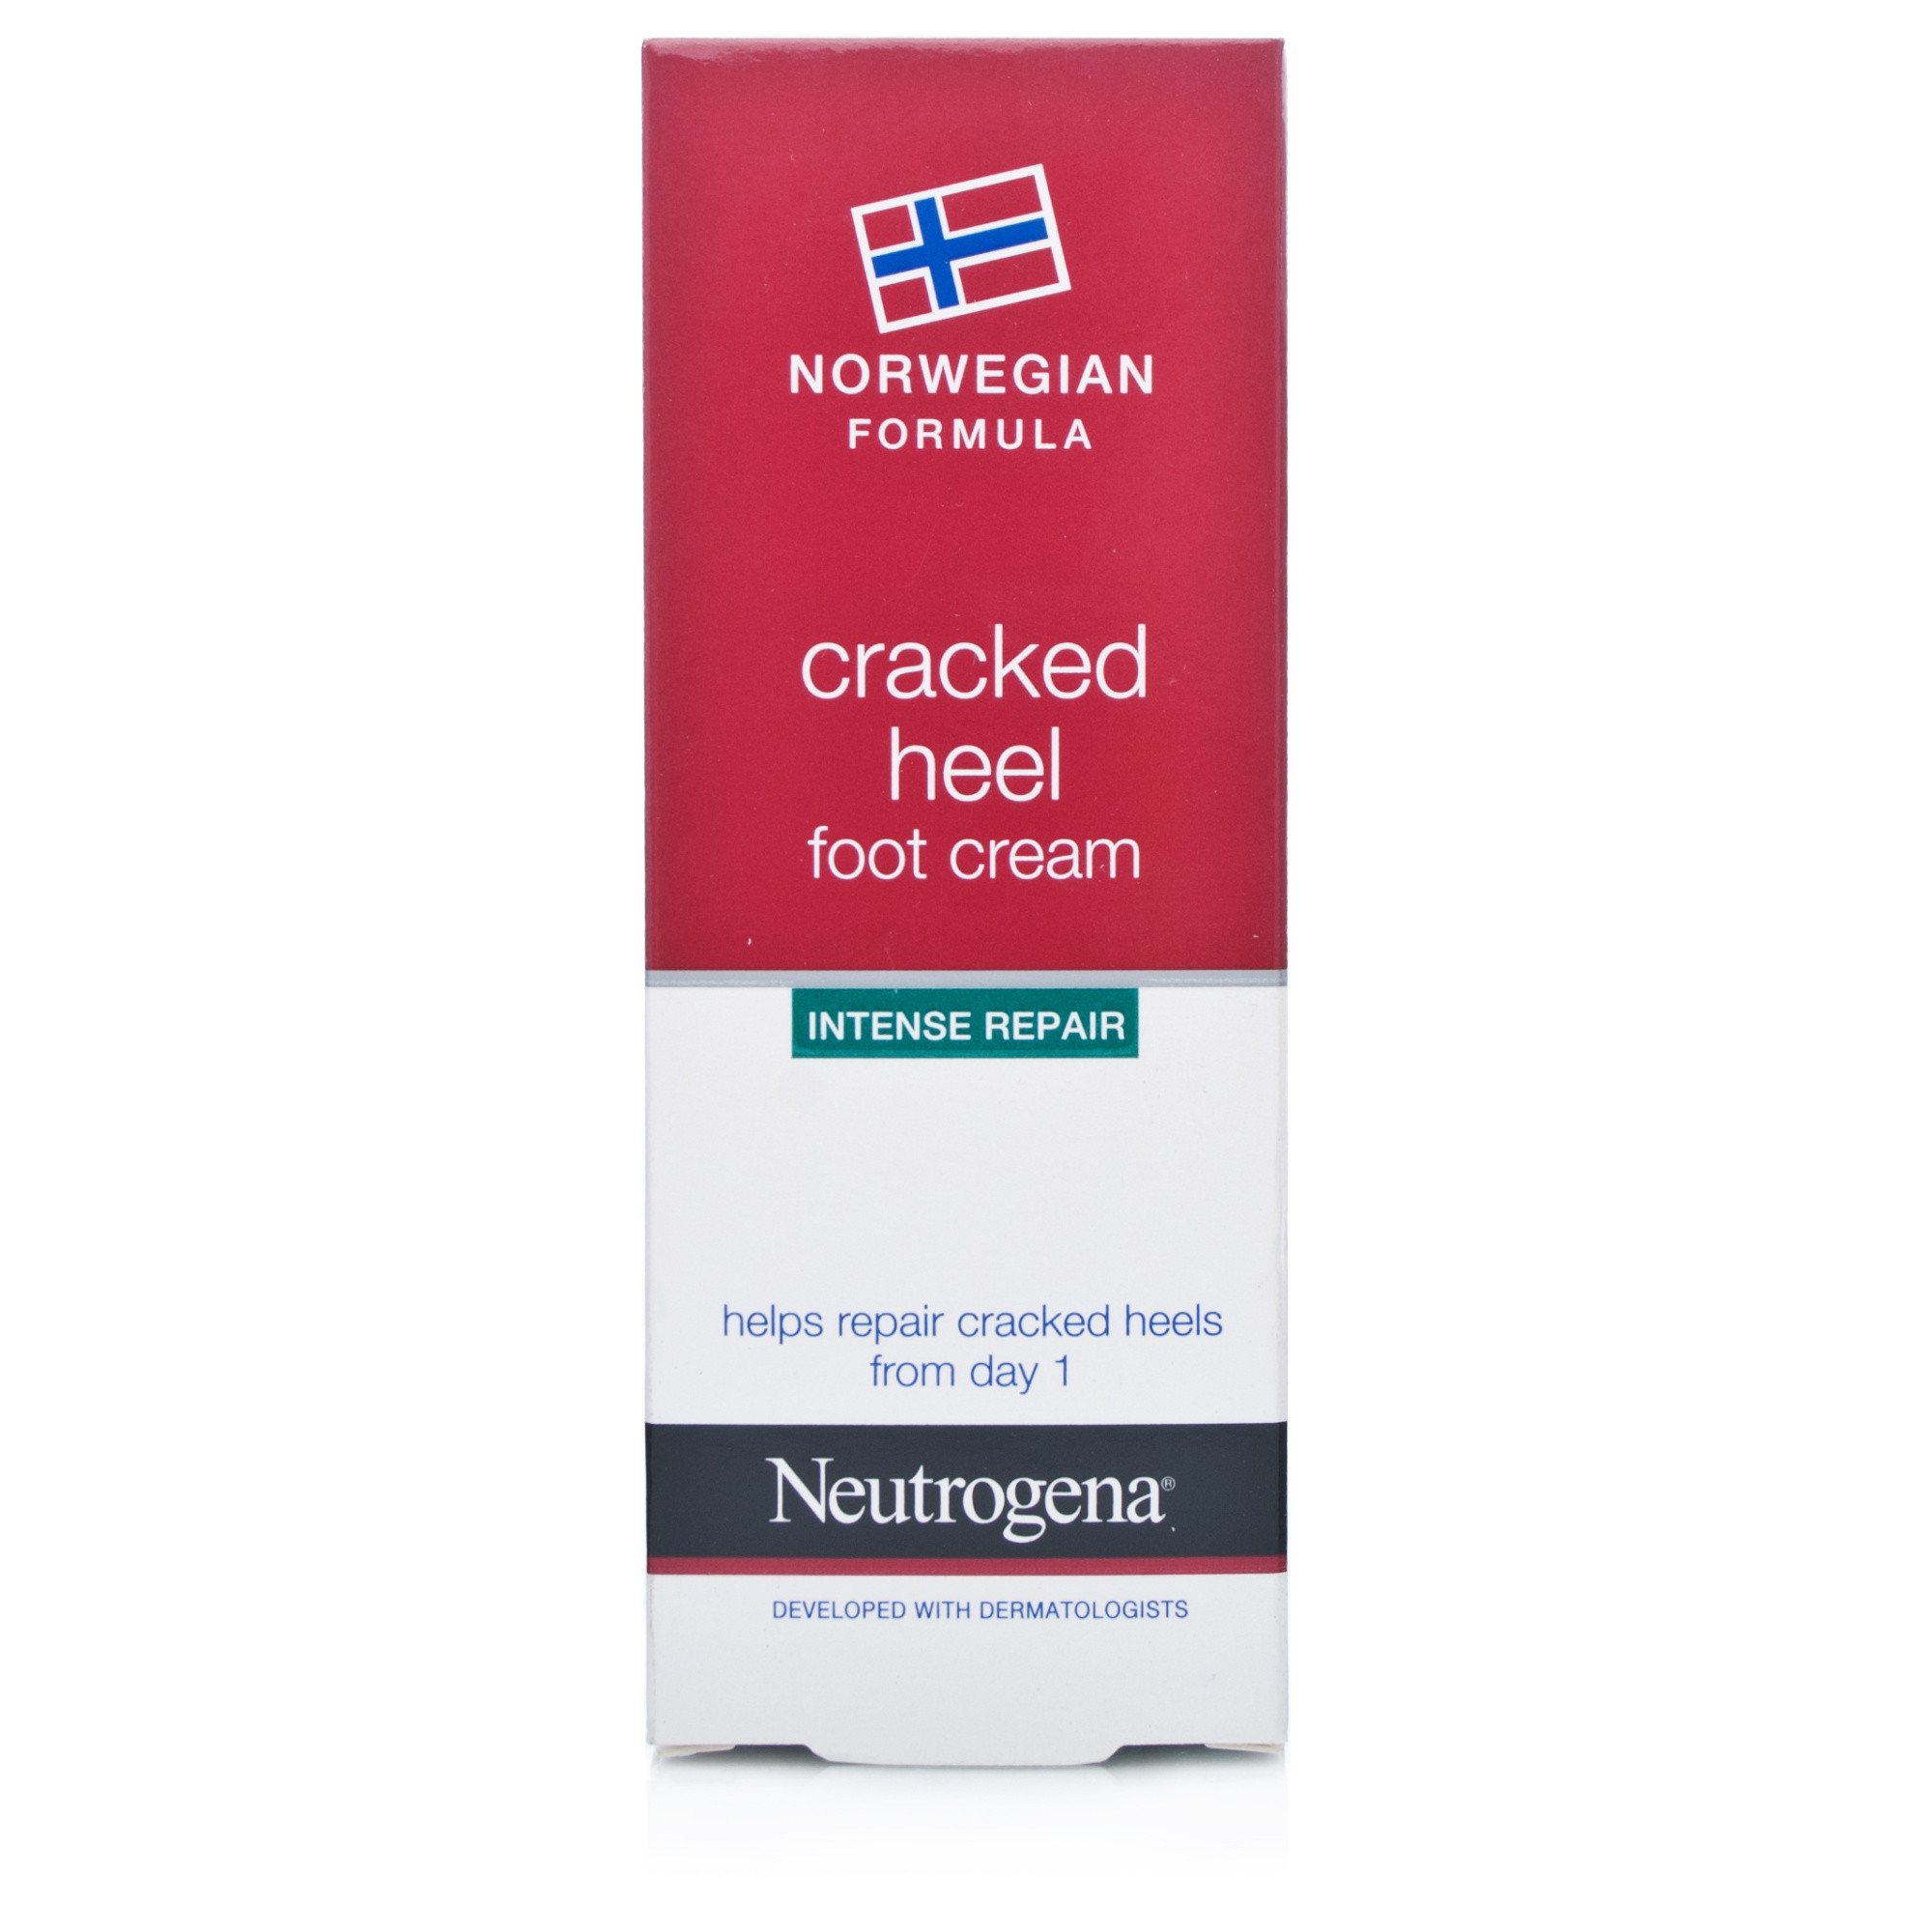 Neutrogena Intense Repair Foot Creme